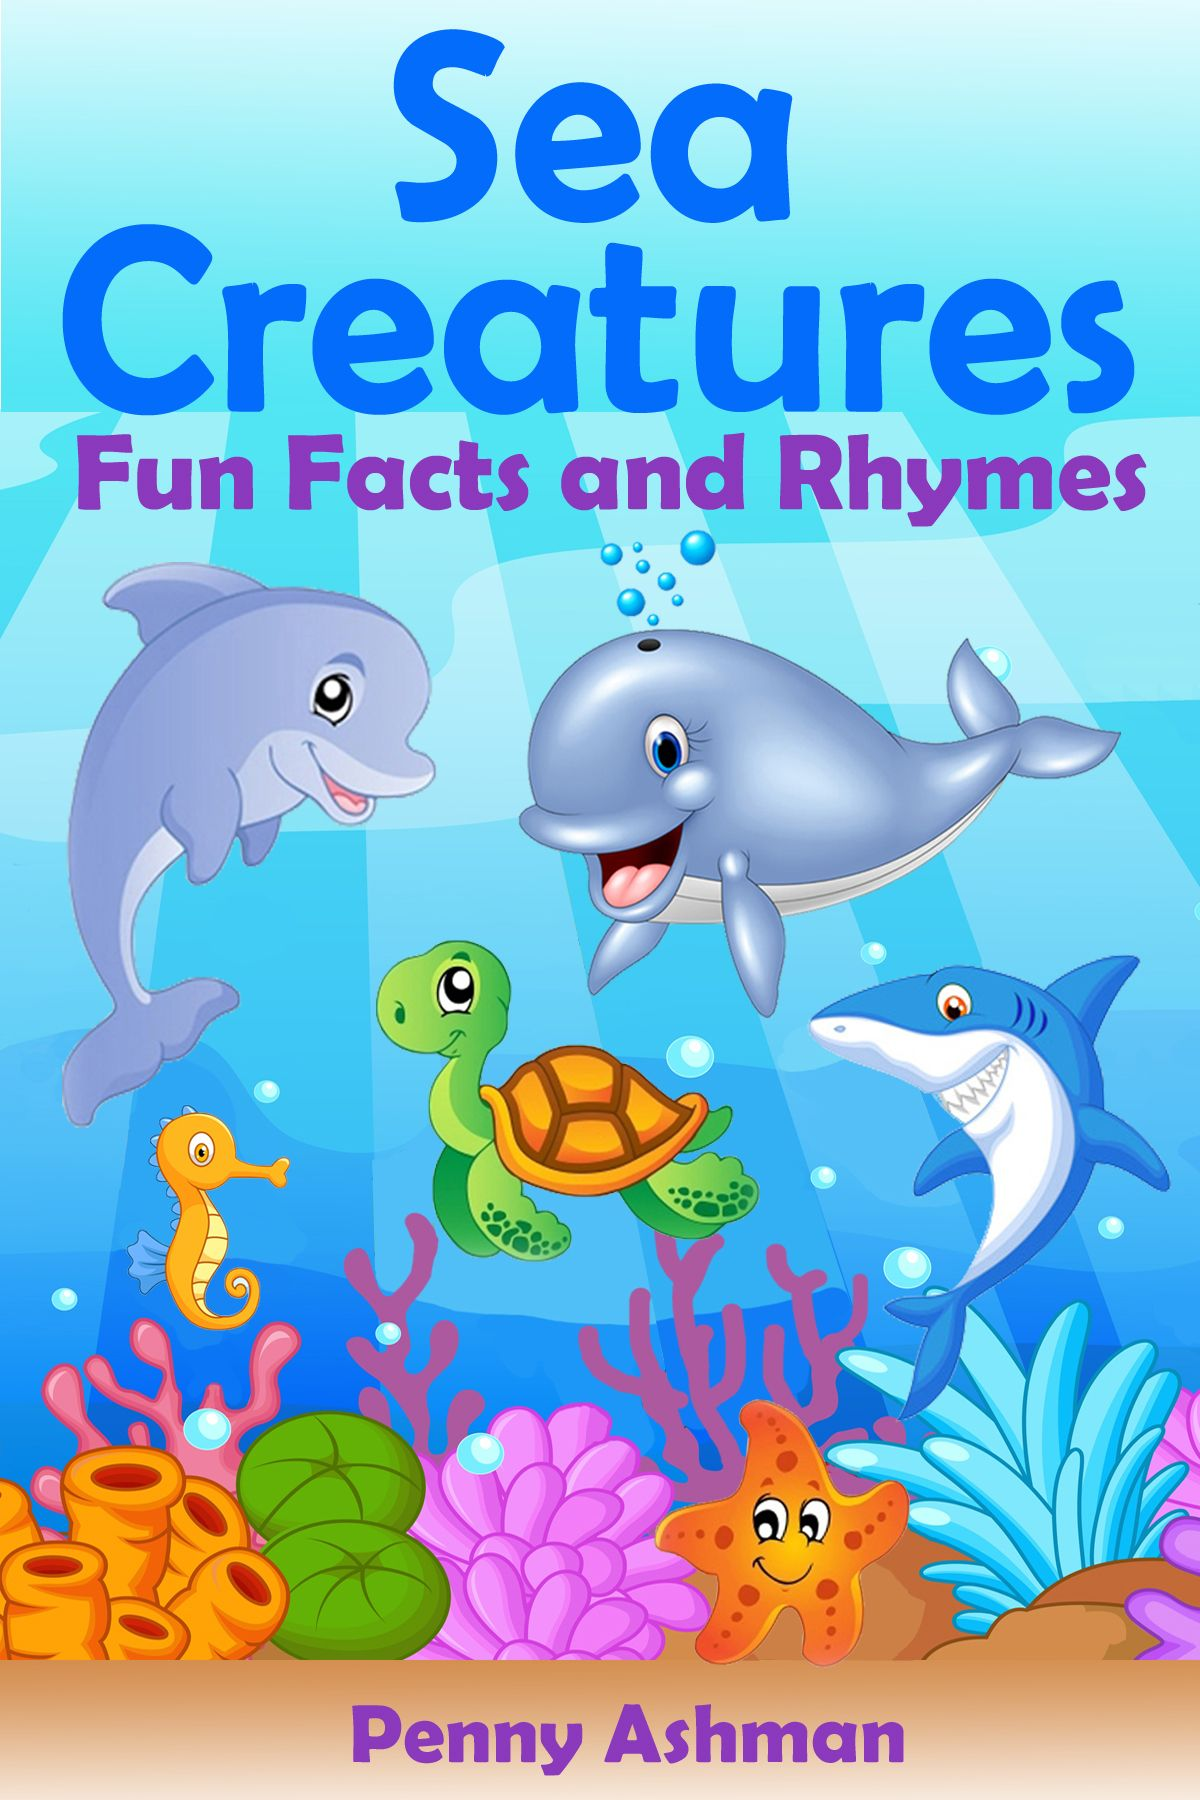 Sea Creatures Fun Facts and Rhymes by Penny Ashman Fun